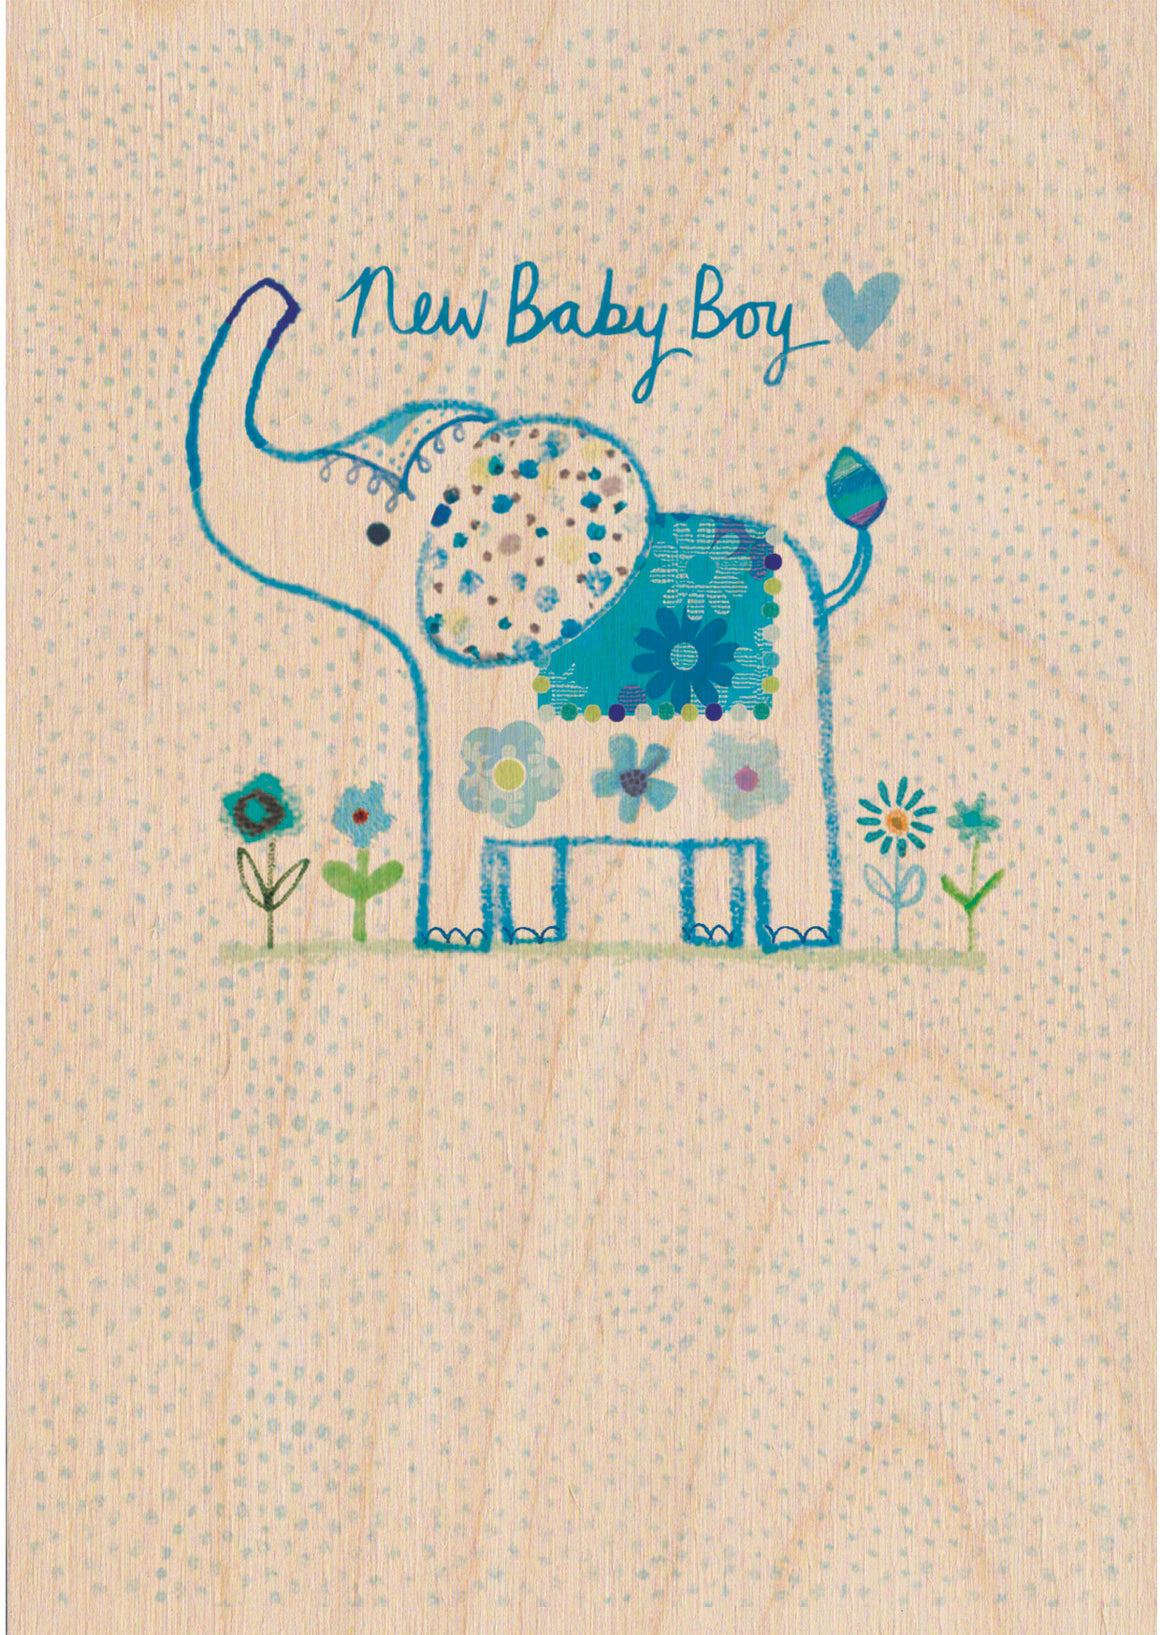 New Baby Boy Wooden Postcard Greeting Card - The Love Trees